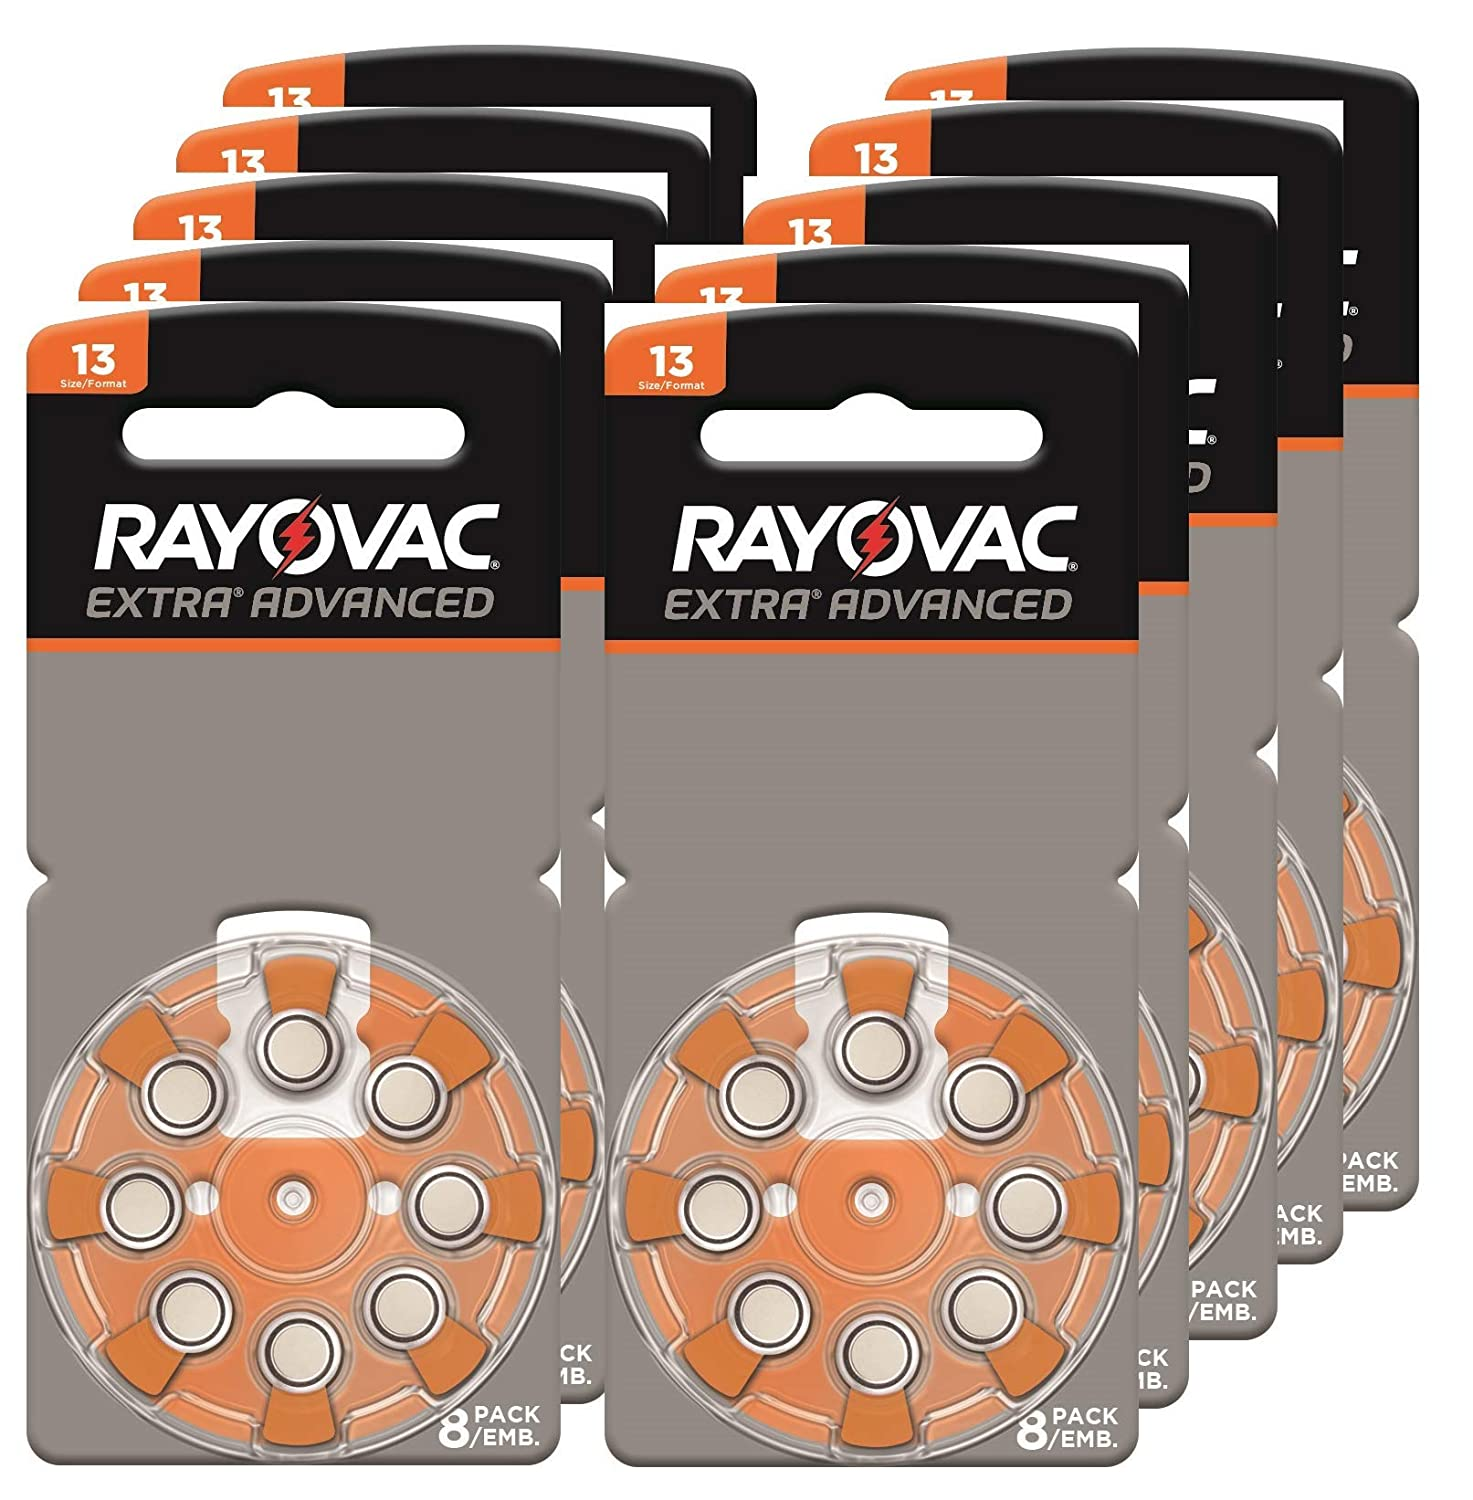 Rayovac Extra Advanced, Size 13 Mercury Free Hearing Aid Batteries (Pack 80 Batteries)